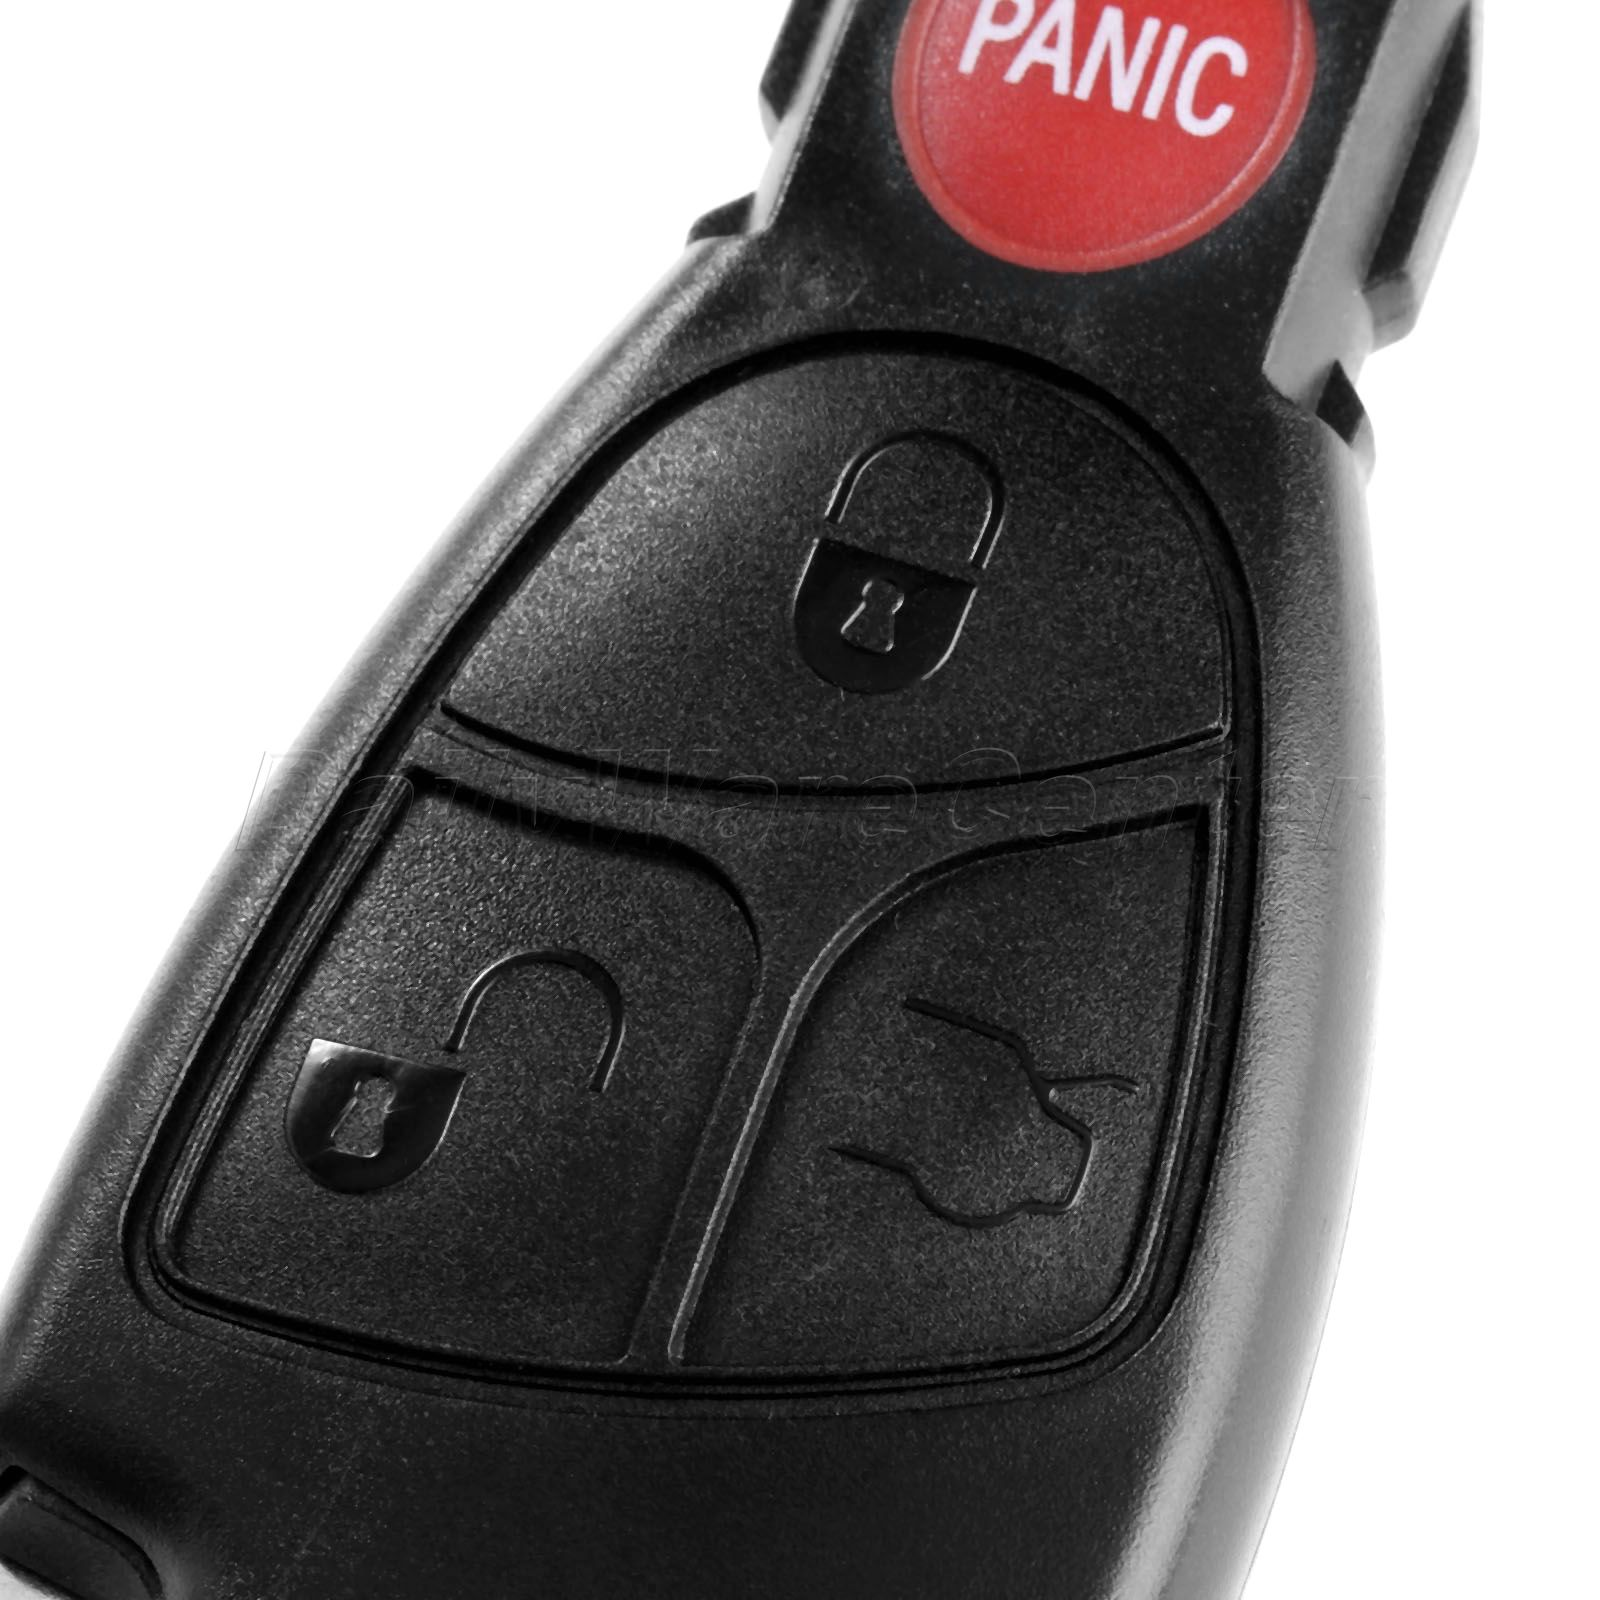 3 1 Panic Button Replacement Remote Car Key Fob Shell Case Battery Clip Key Insert For MERCEDES BENZ S E C R CL GL SL CLK SLK in Car Key from Automobiles Motorcycles